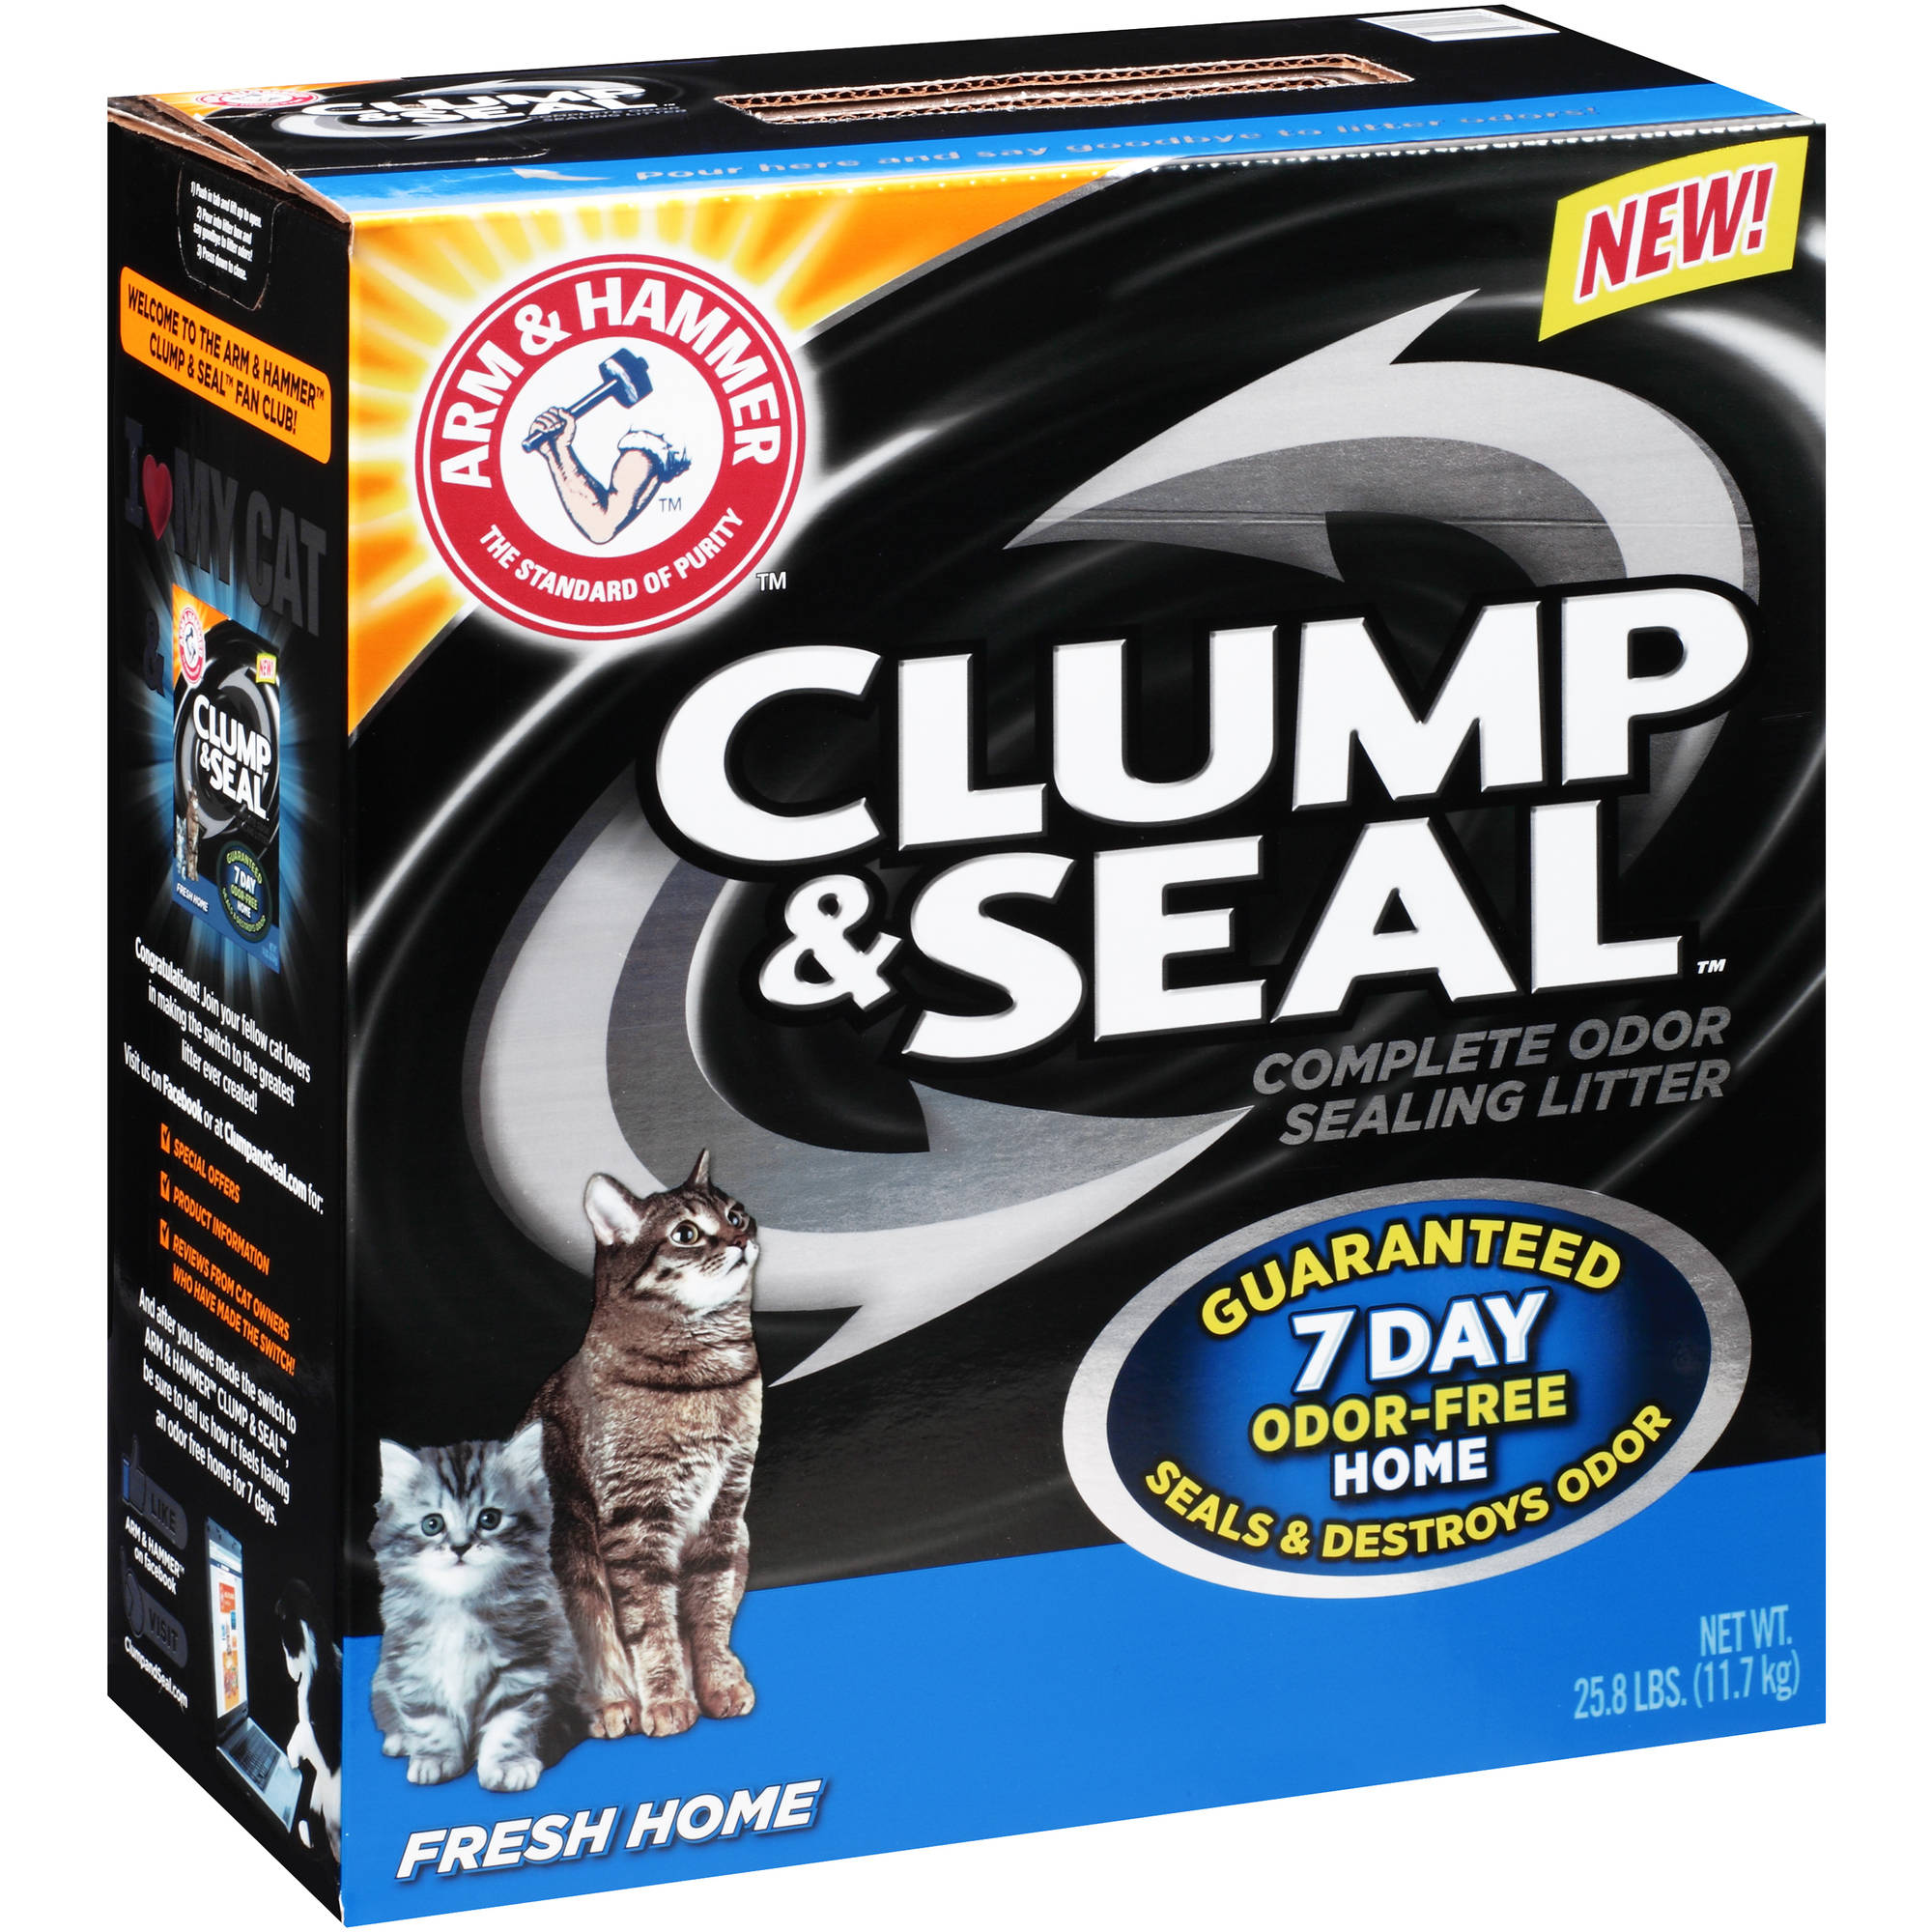 Arm & Hammer Clump & Seal Fresh Home Complete Odor Sealing Litter 25.8 lb. Box